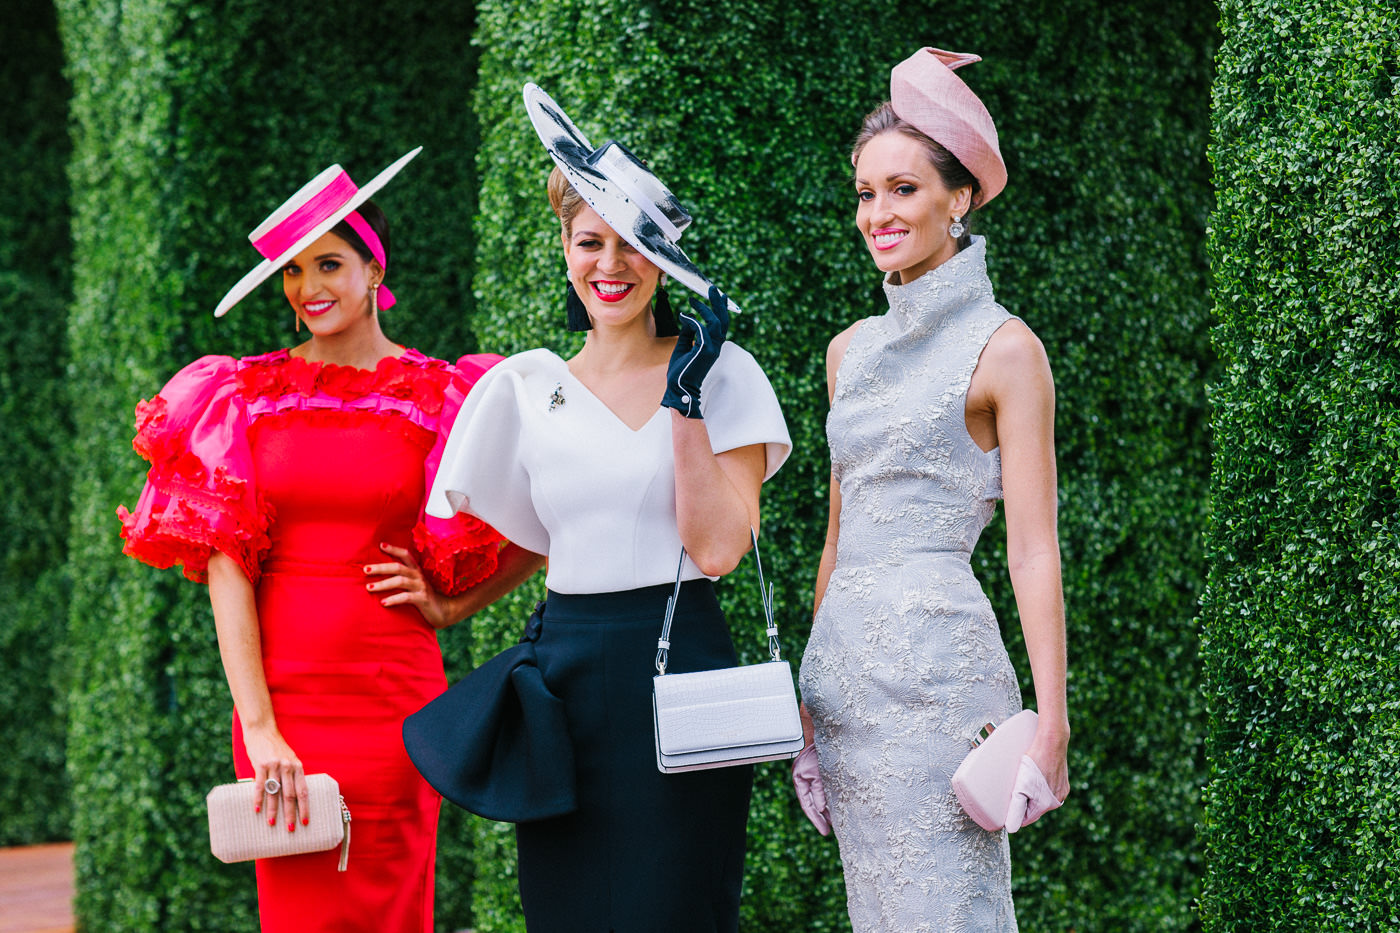 Betting on melbourne cup day fashions whsports betting odds